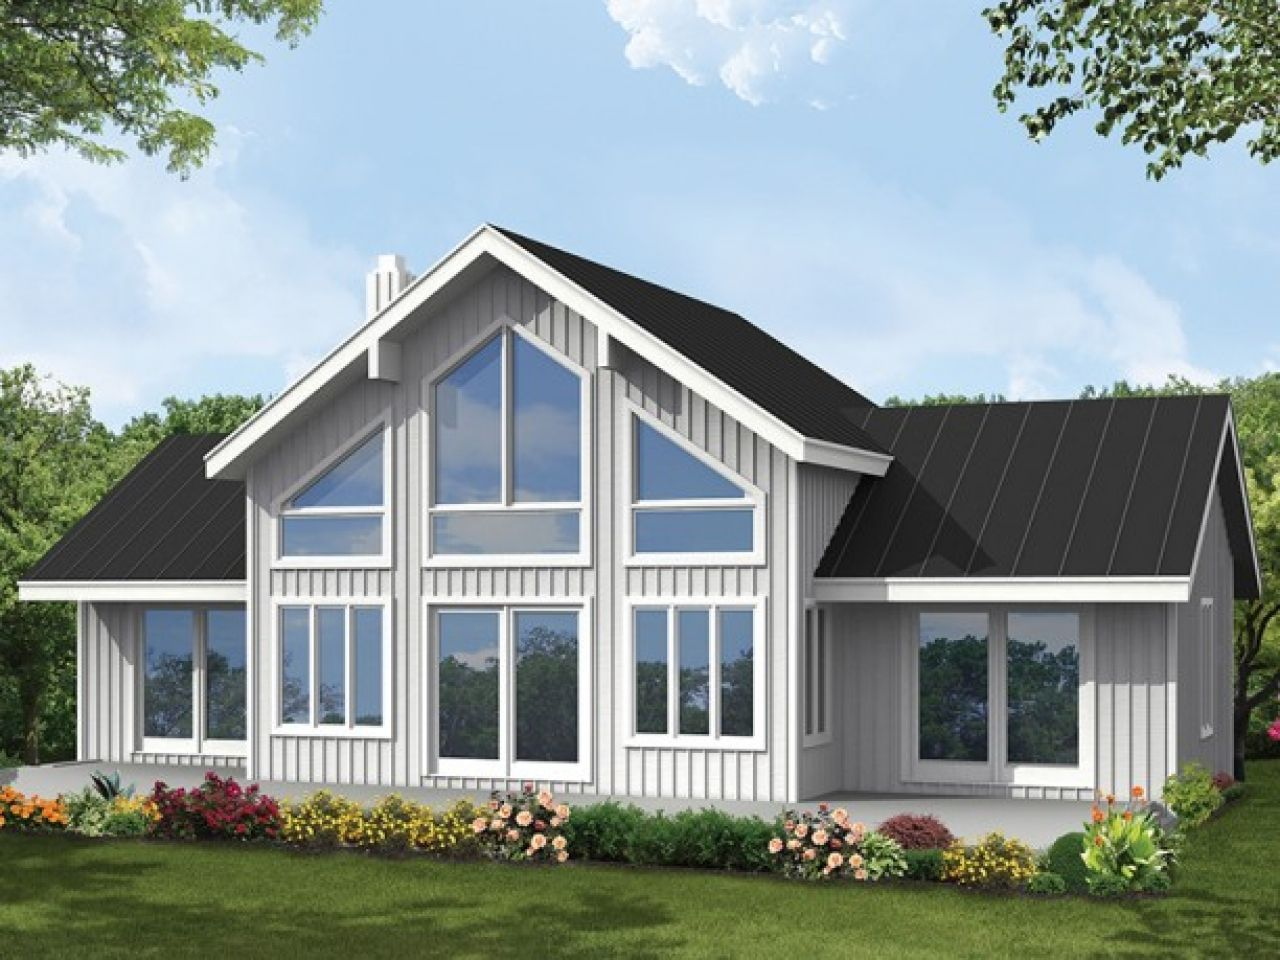 Big Window House Plans Let Natural Light In 4 Bedroom House Plans Barn Style House Plans Modern Contemporary House Plans Porch House Plans